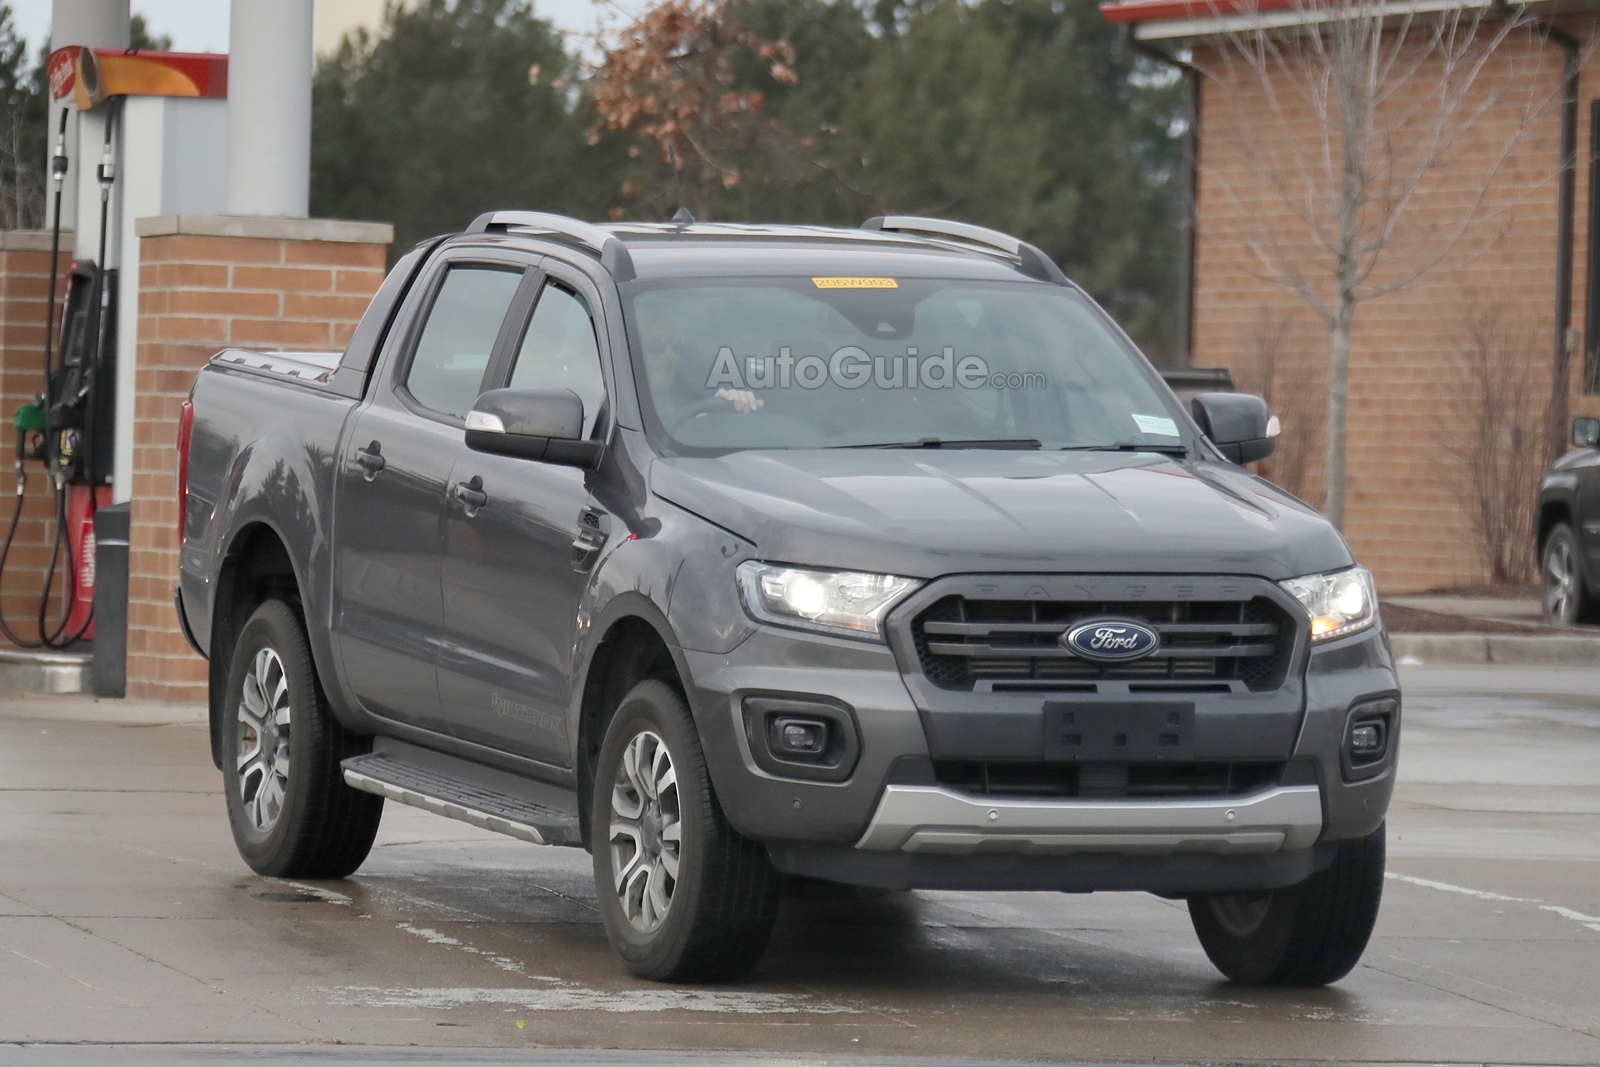 Ranger Ford 2018 >> 2019 Ford Ranger Wildtrak Spied Inside and Out » AutoGuide.com News